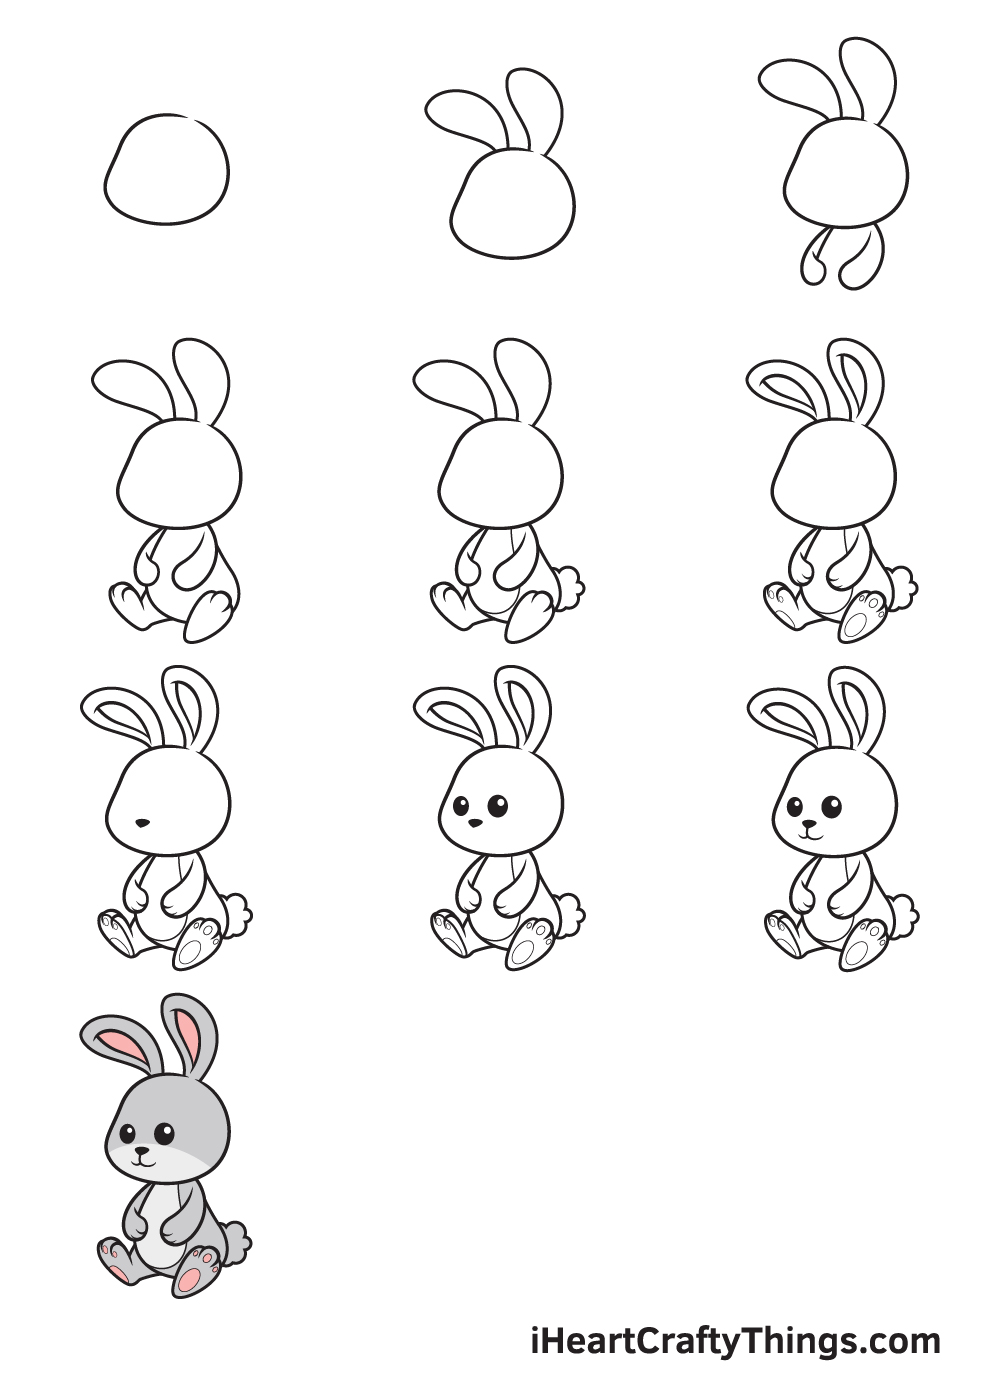 Drawing Bunny in 9 Easy Steps